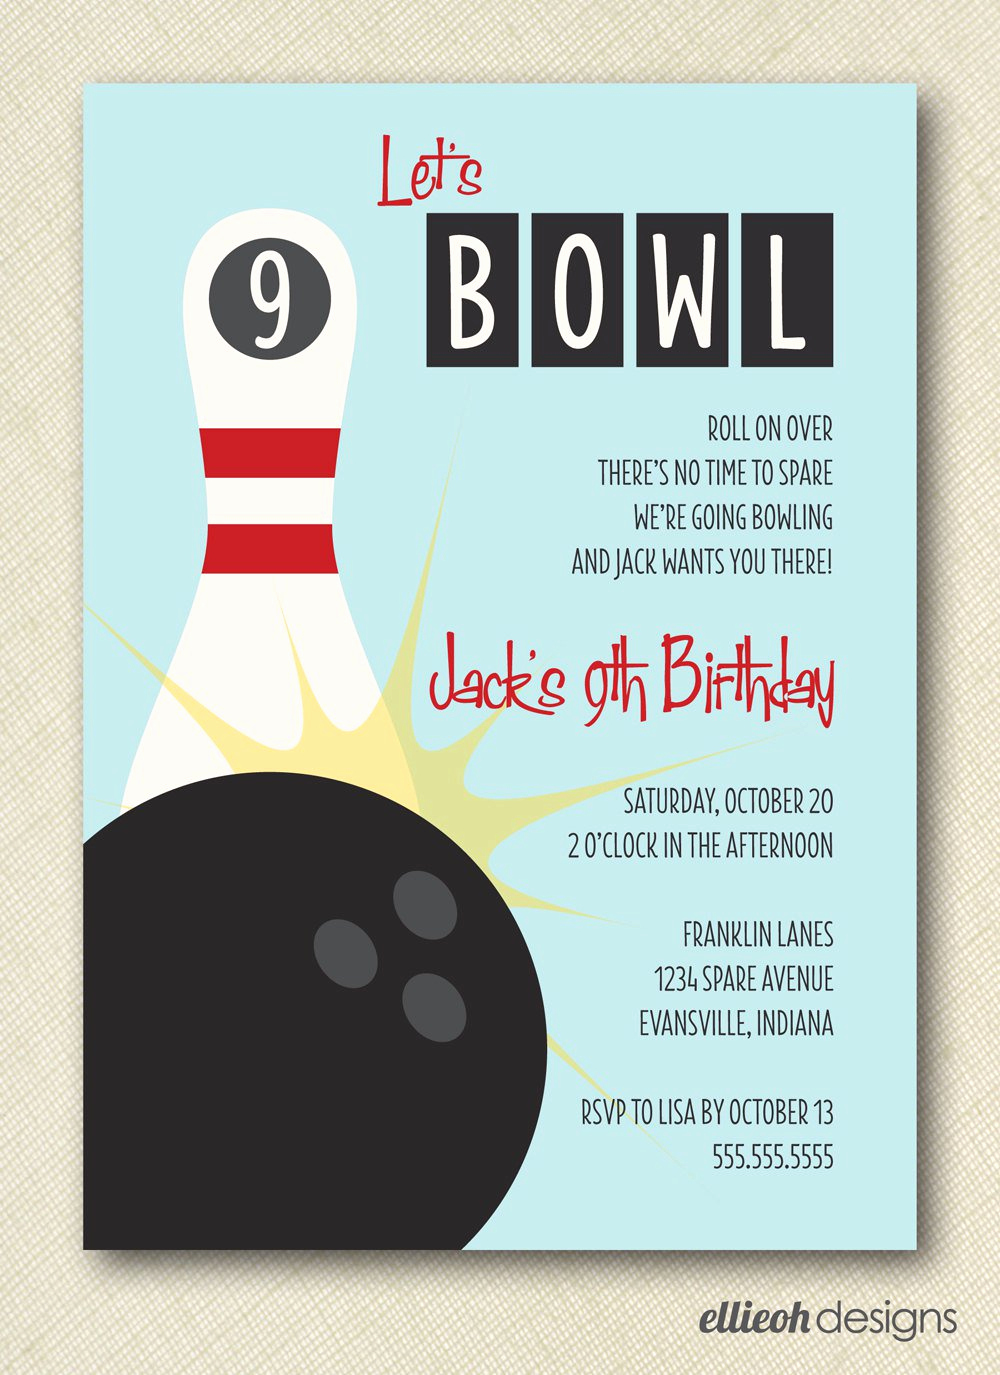 Bowling Party Invitation Template Free New Free Printable Bowling Party Invitation Templates